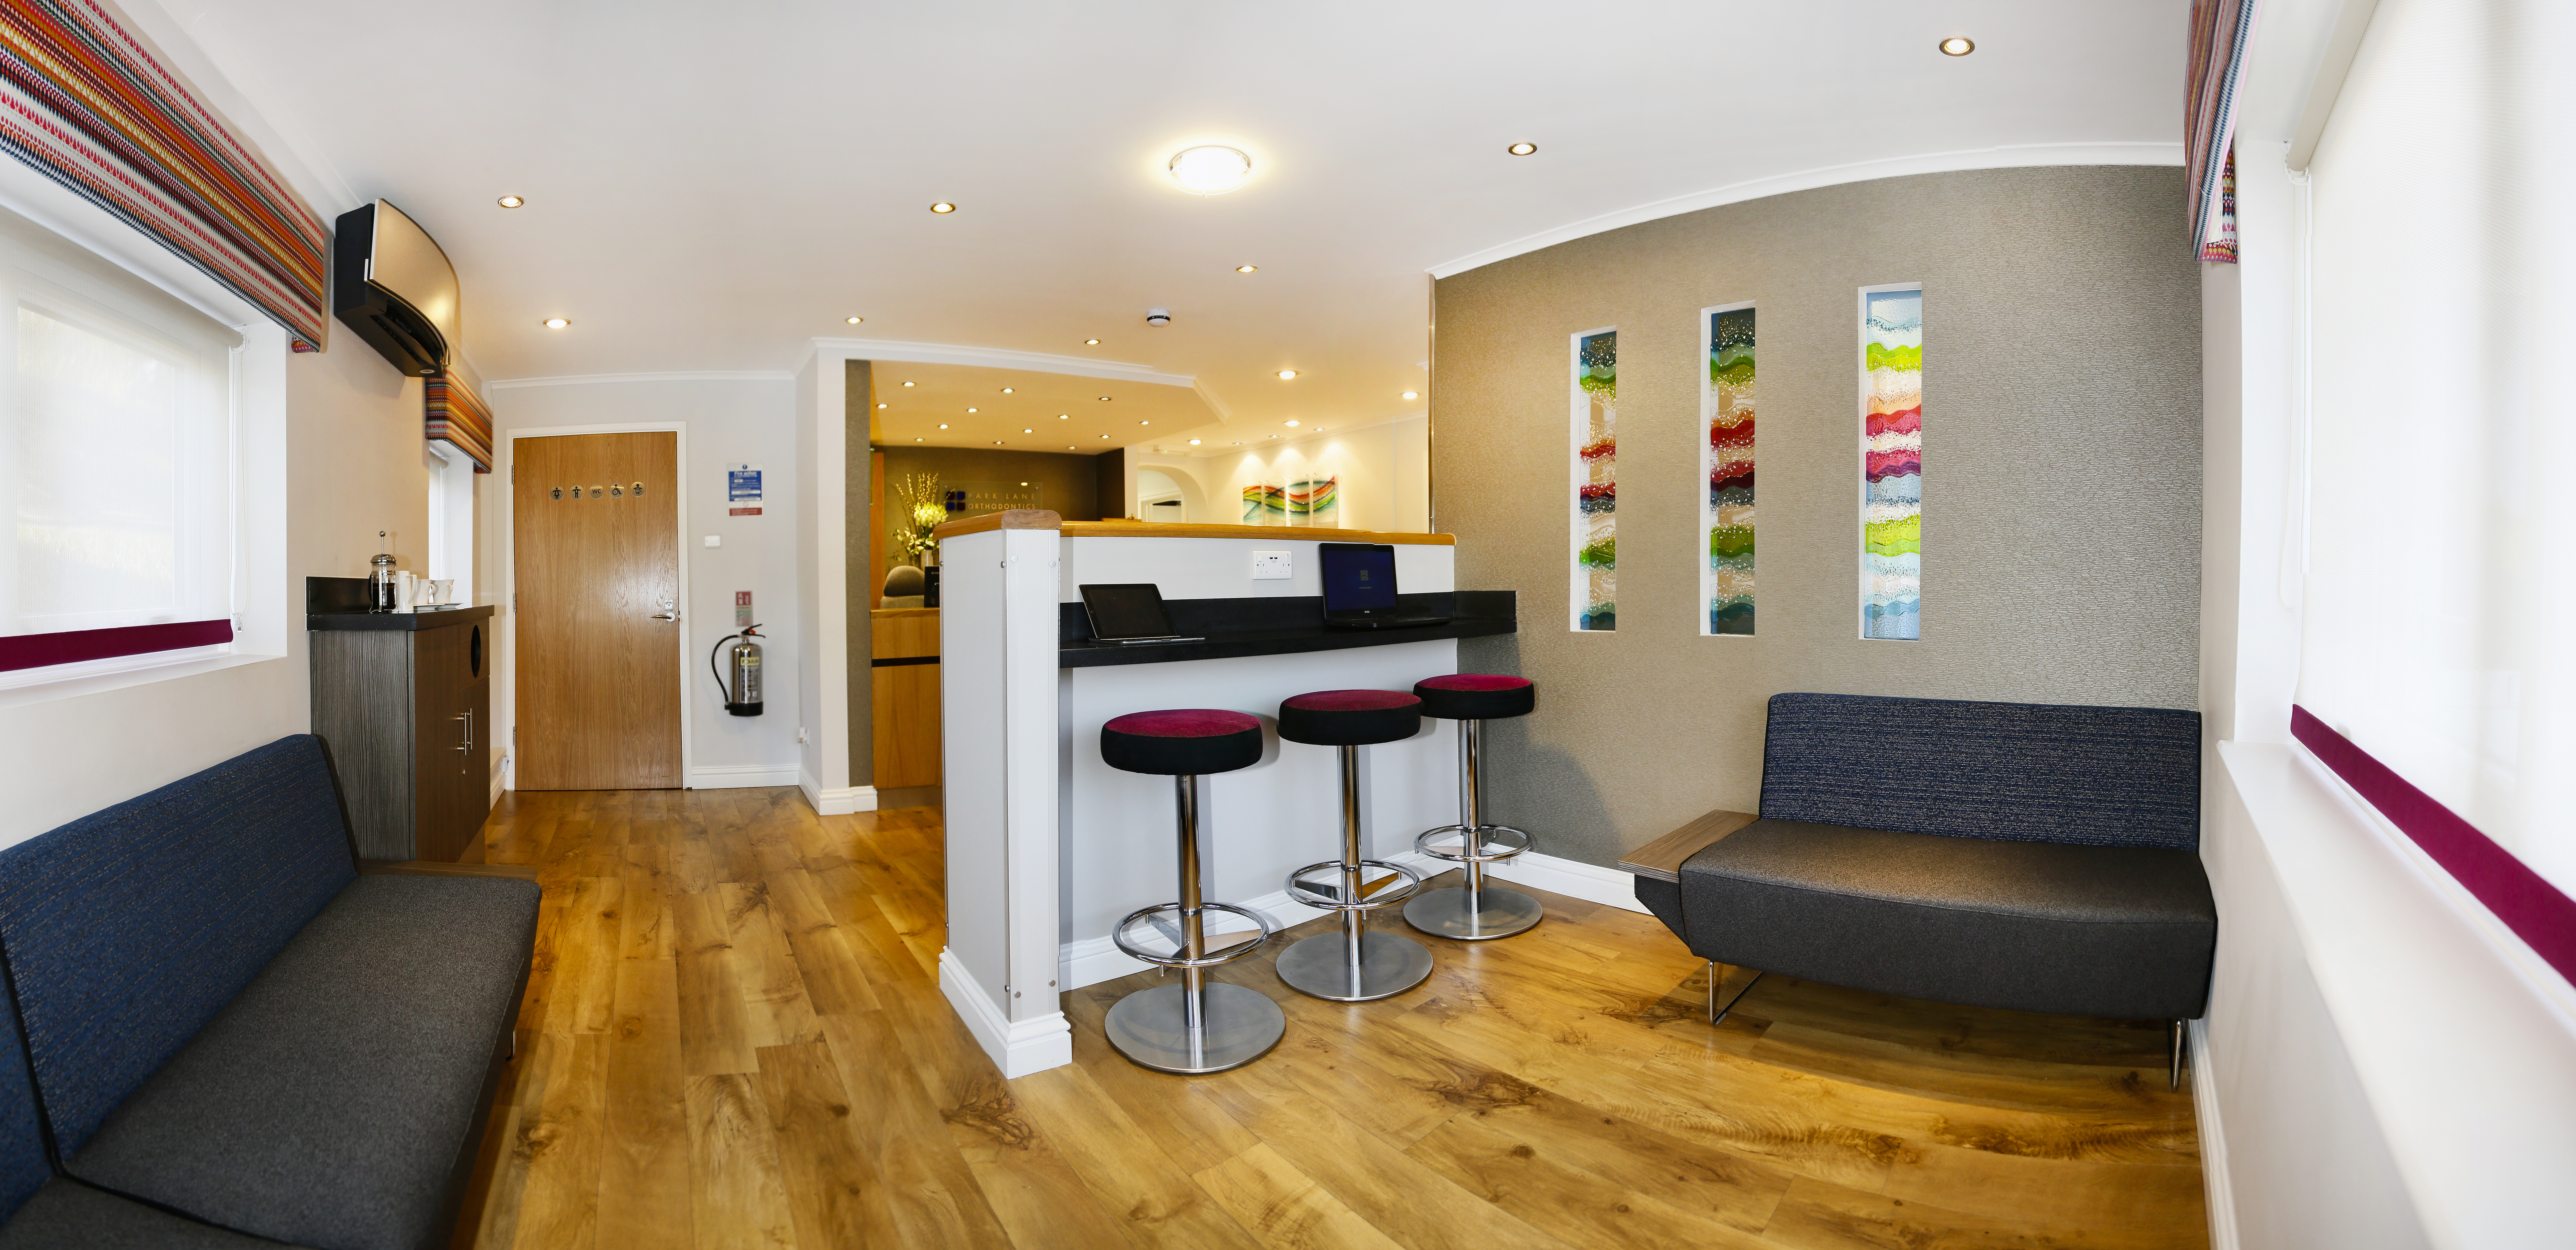 park-lane-orthodontics-020